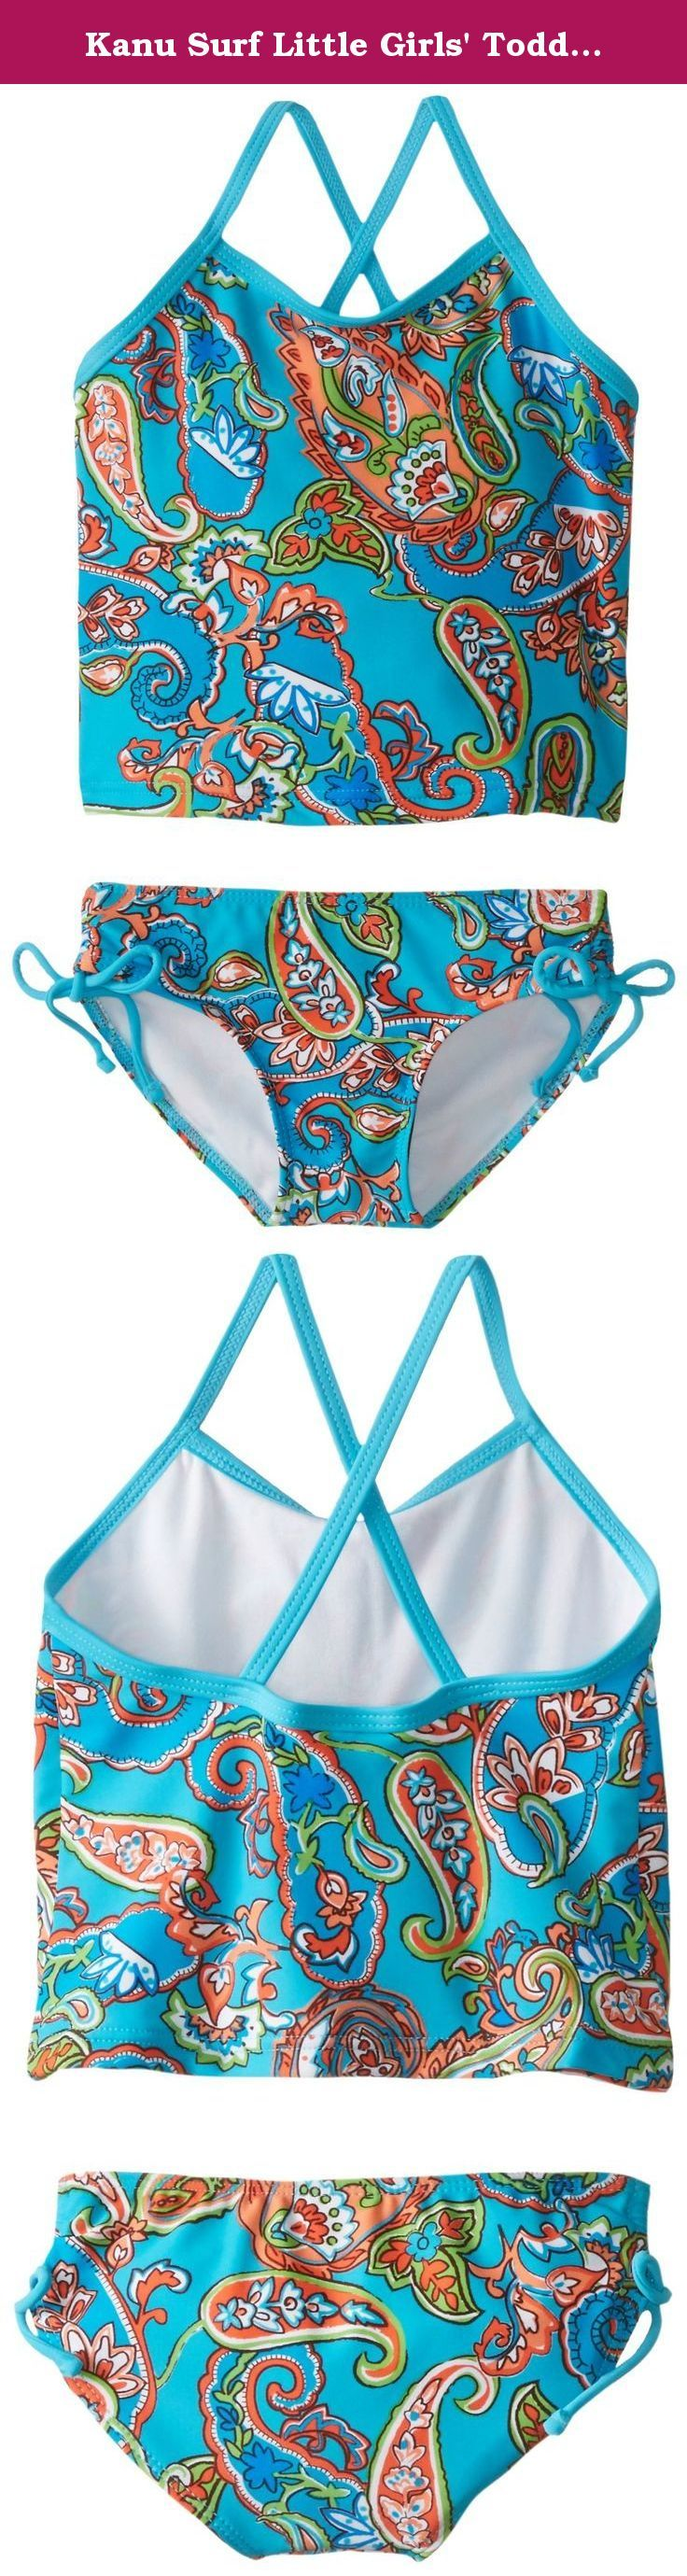 Kanu Surf Little Girls' Toddler Caroline Tankini Swimsuit, Blue, 3T. Kanu Surf presents our newest swim styles yet. Kanu, a Surf and swim lifestyle brand is well known for great prints and colors along with high quality functional apparel for the whole family. All of our swimwear is made with a high quality nylon/spandex tricot fabric and are lined both front and back. All of our prints are available in 1 or 2 piece options. Kanu swimwear is great for the active athlete as well as for the...